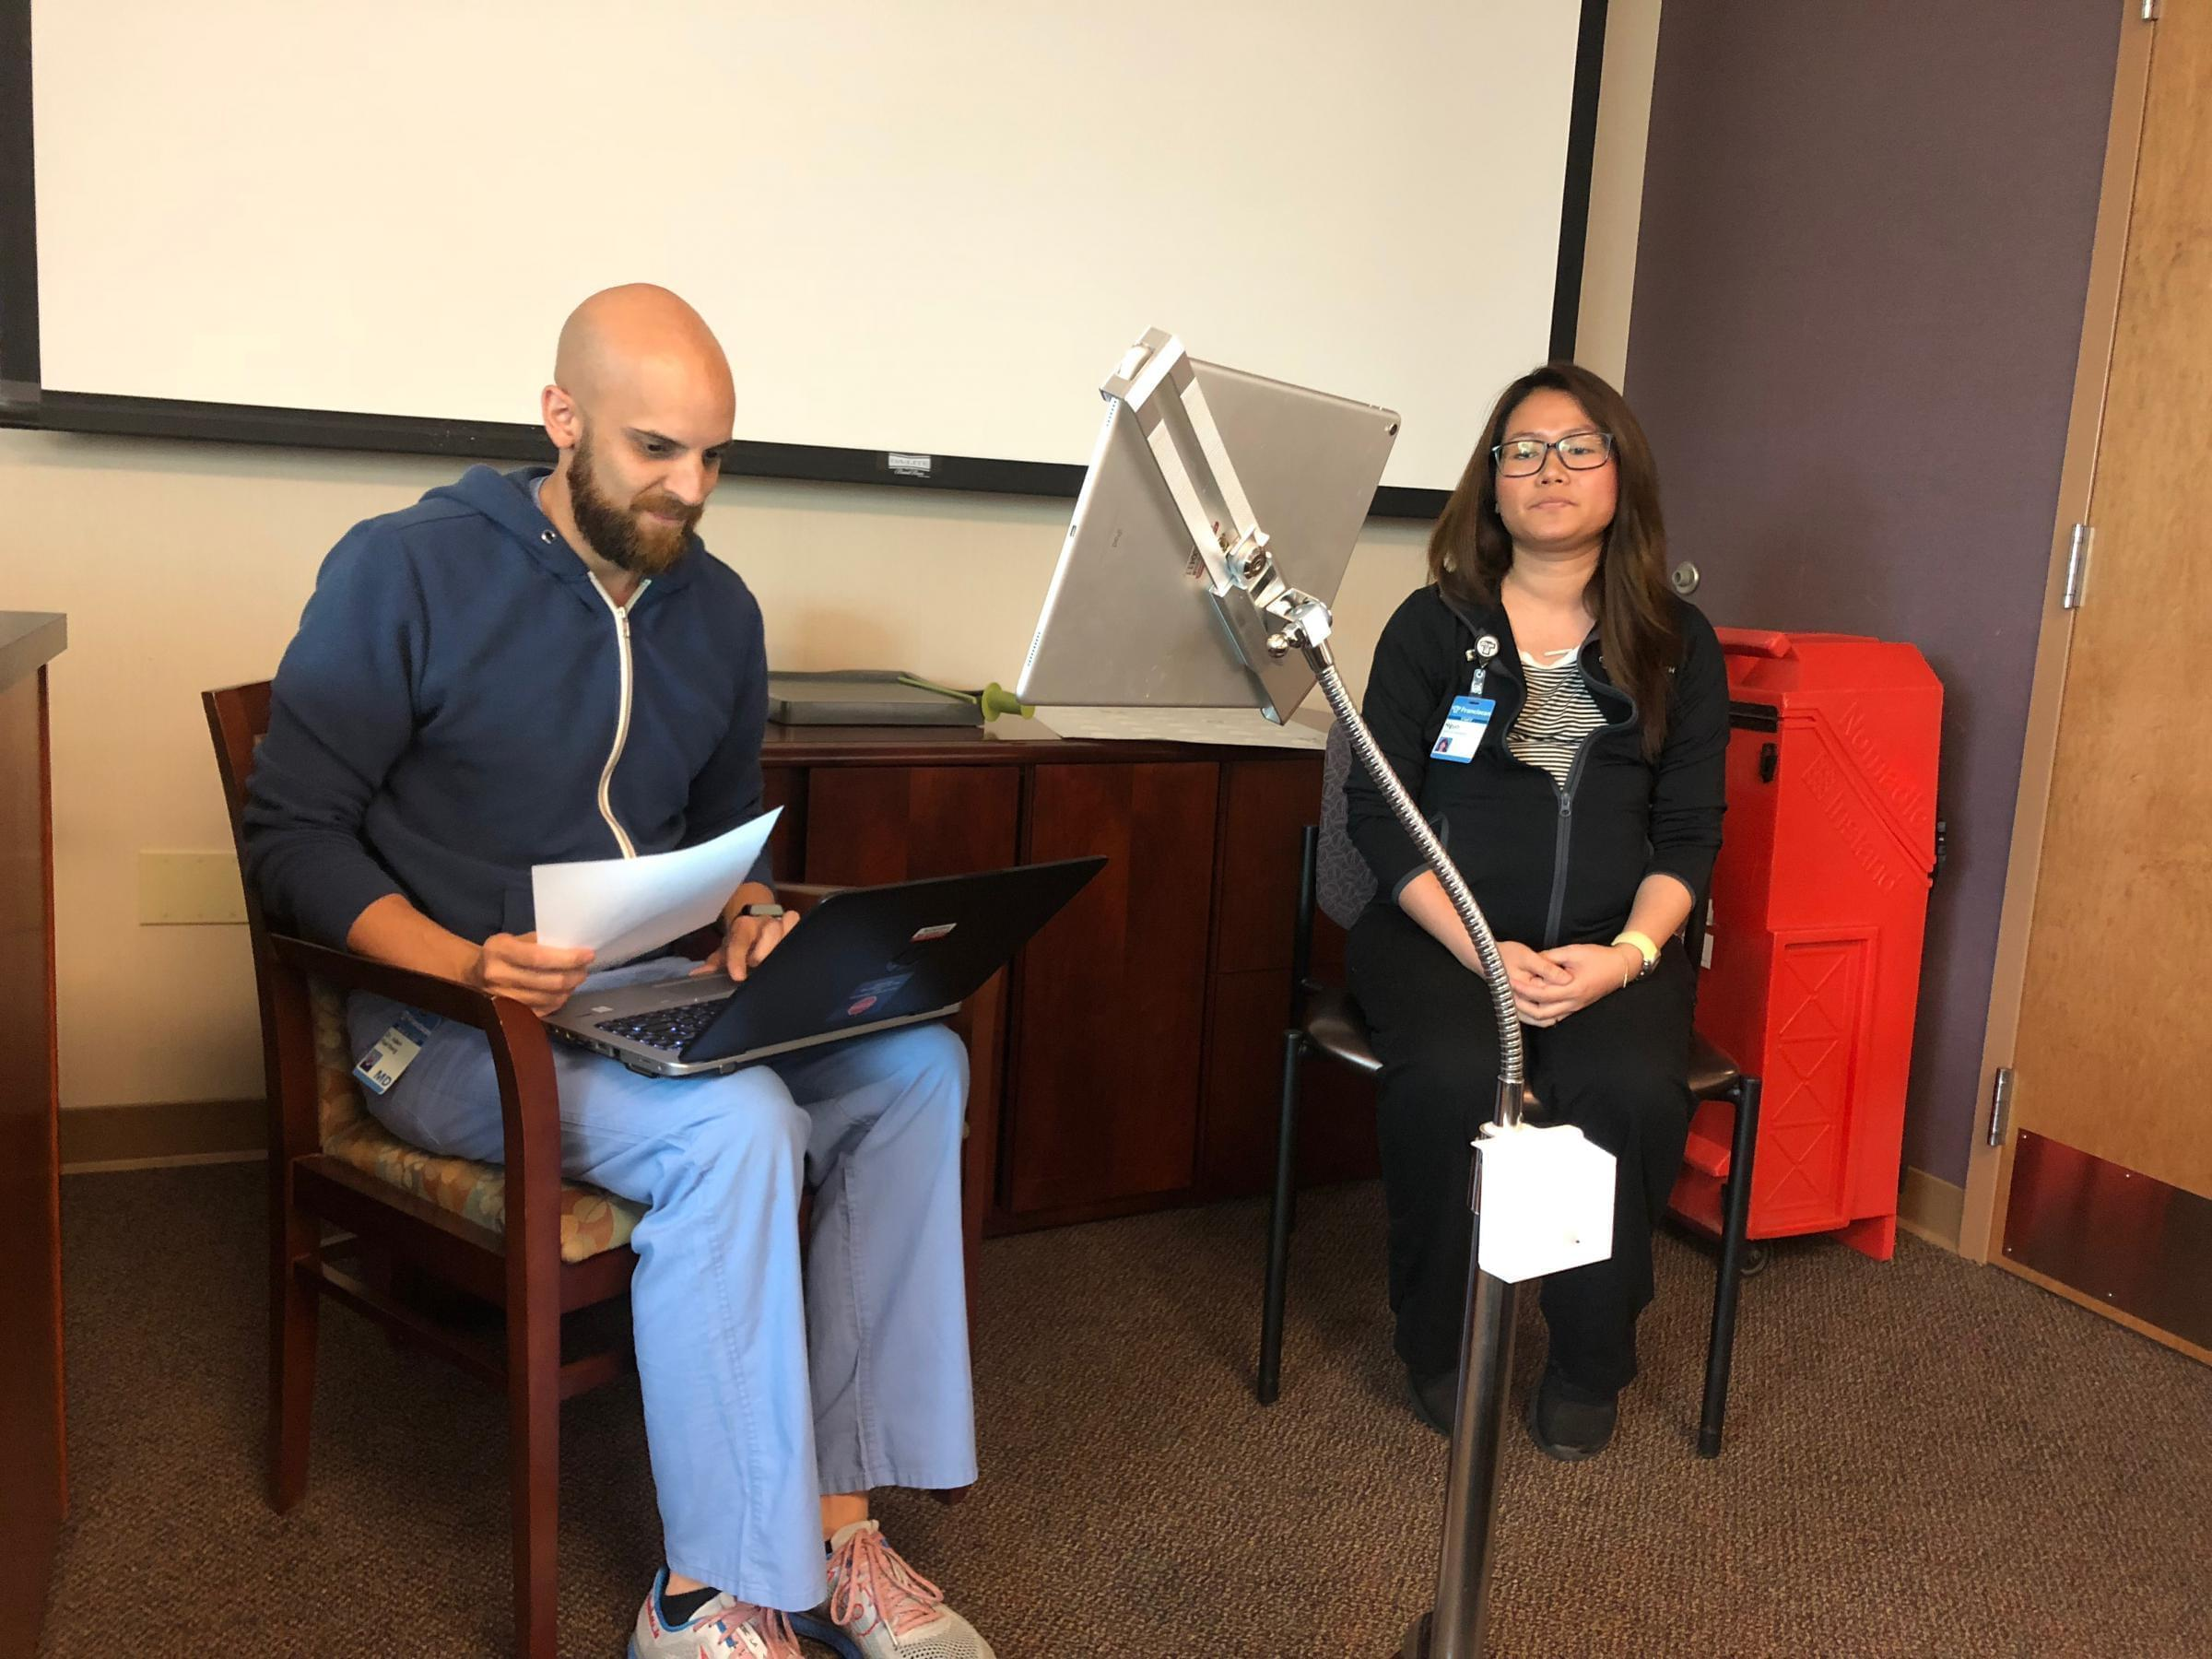 Adam Paarlberg and medical assistant Ngun Tial demonstrate how the live interpreter MARTI system works.